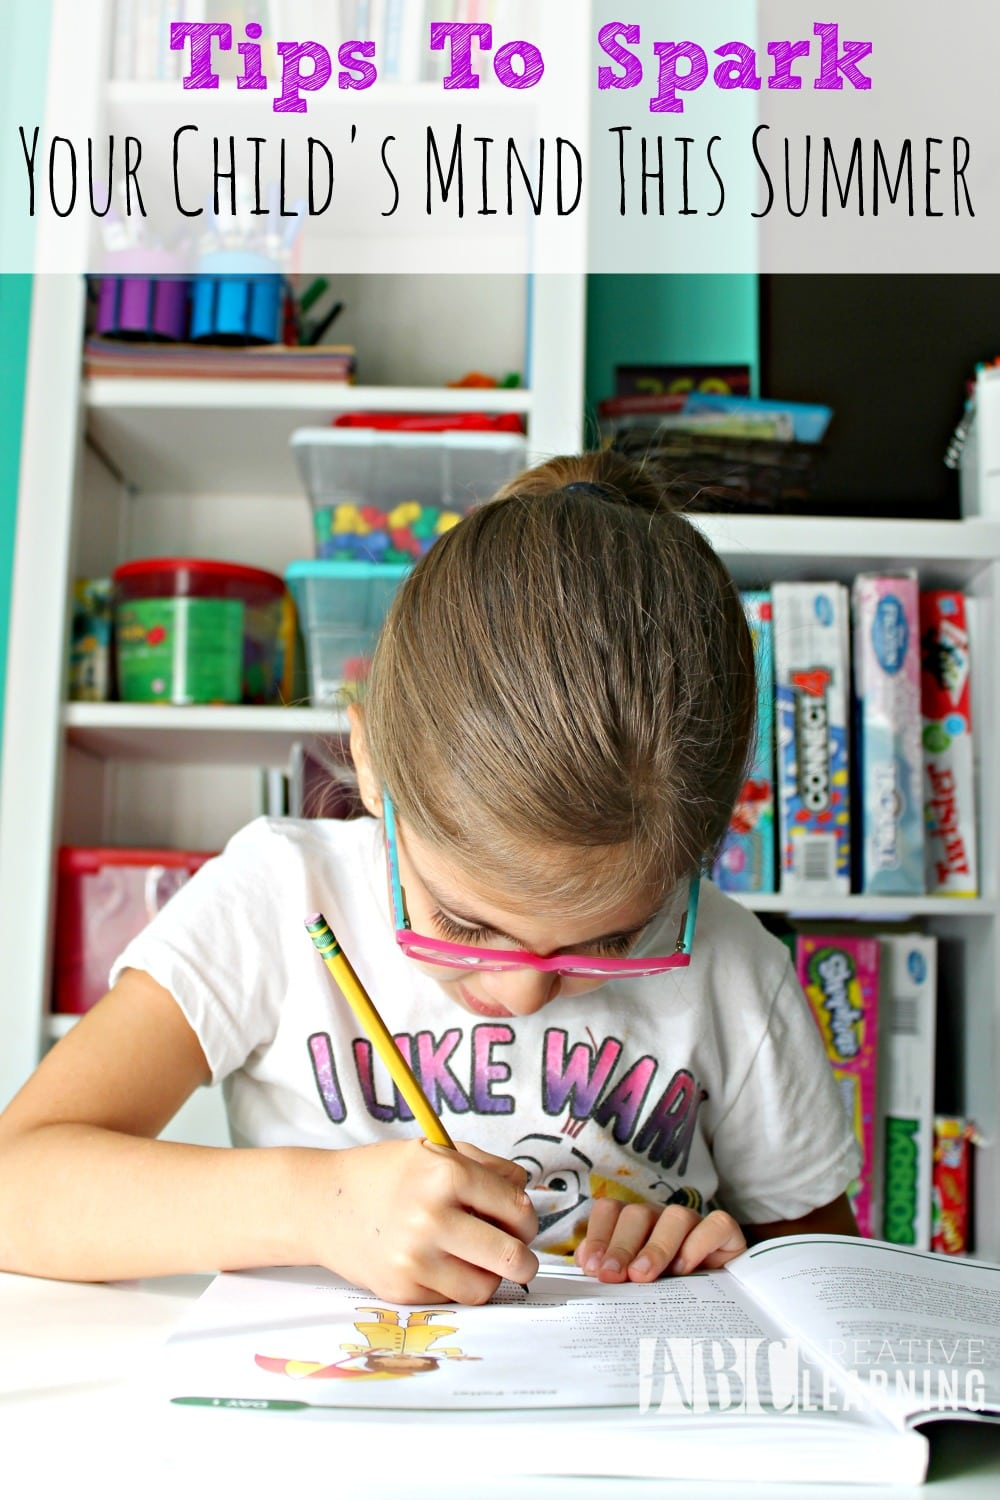 Tips To Spark Your Child's Mind This Summer